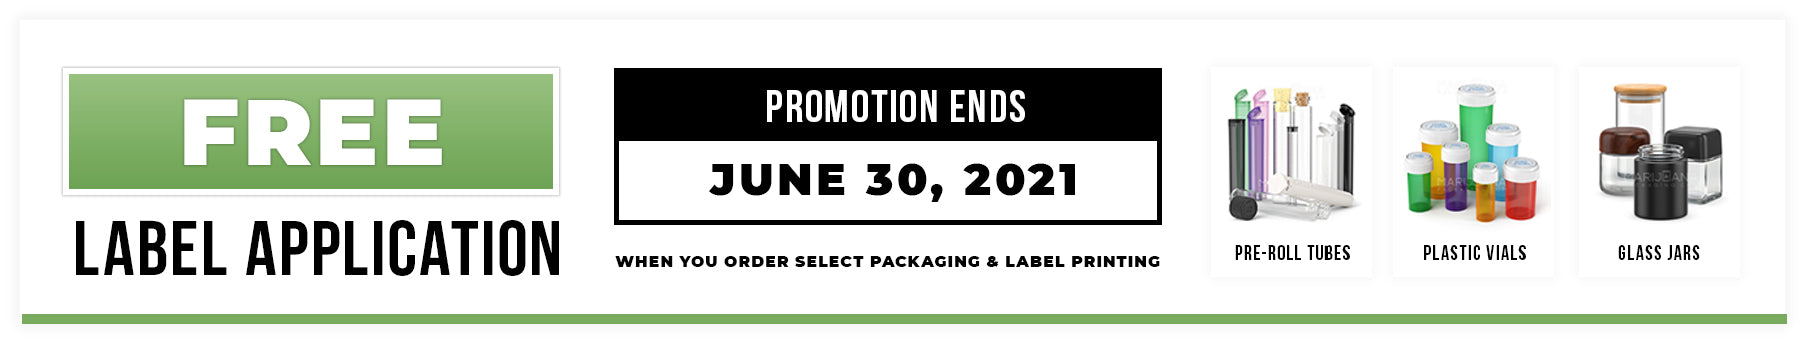 Free Label Application with Purchase of Select Packaging and Label Printing